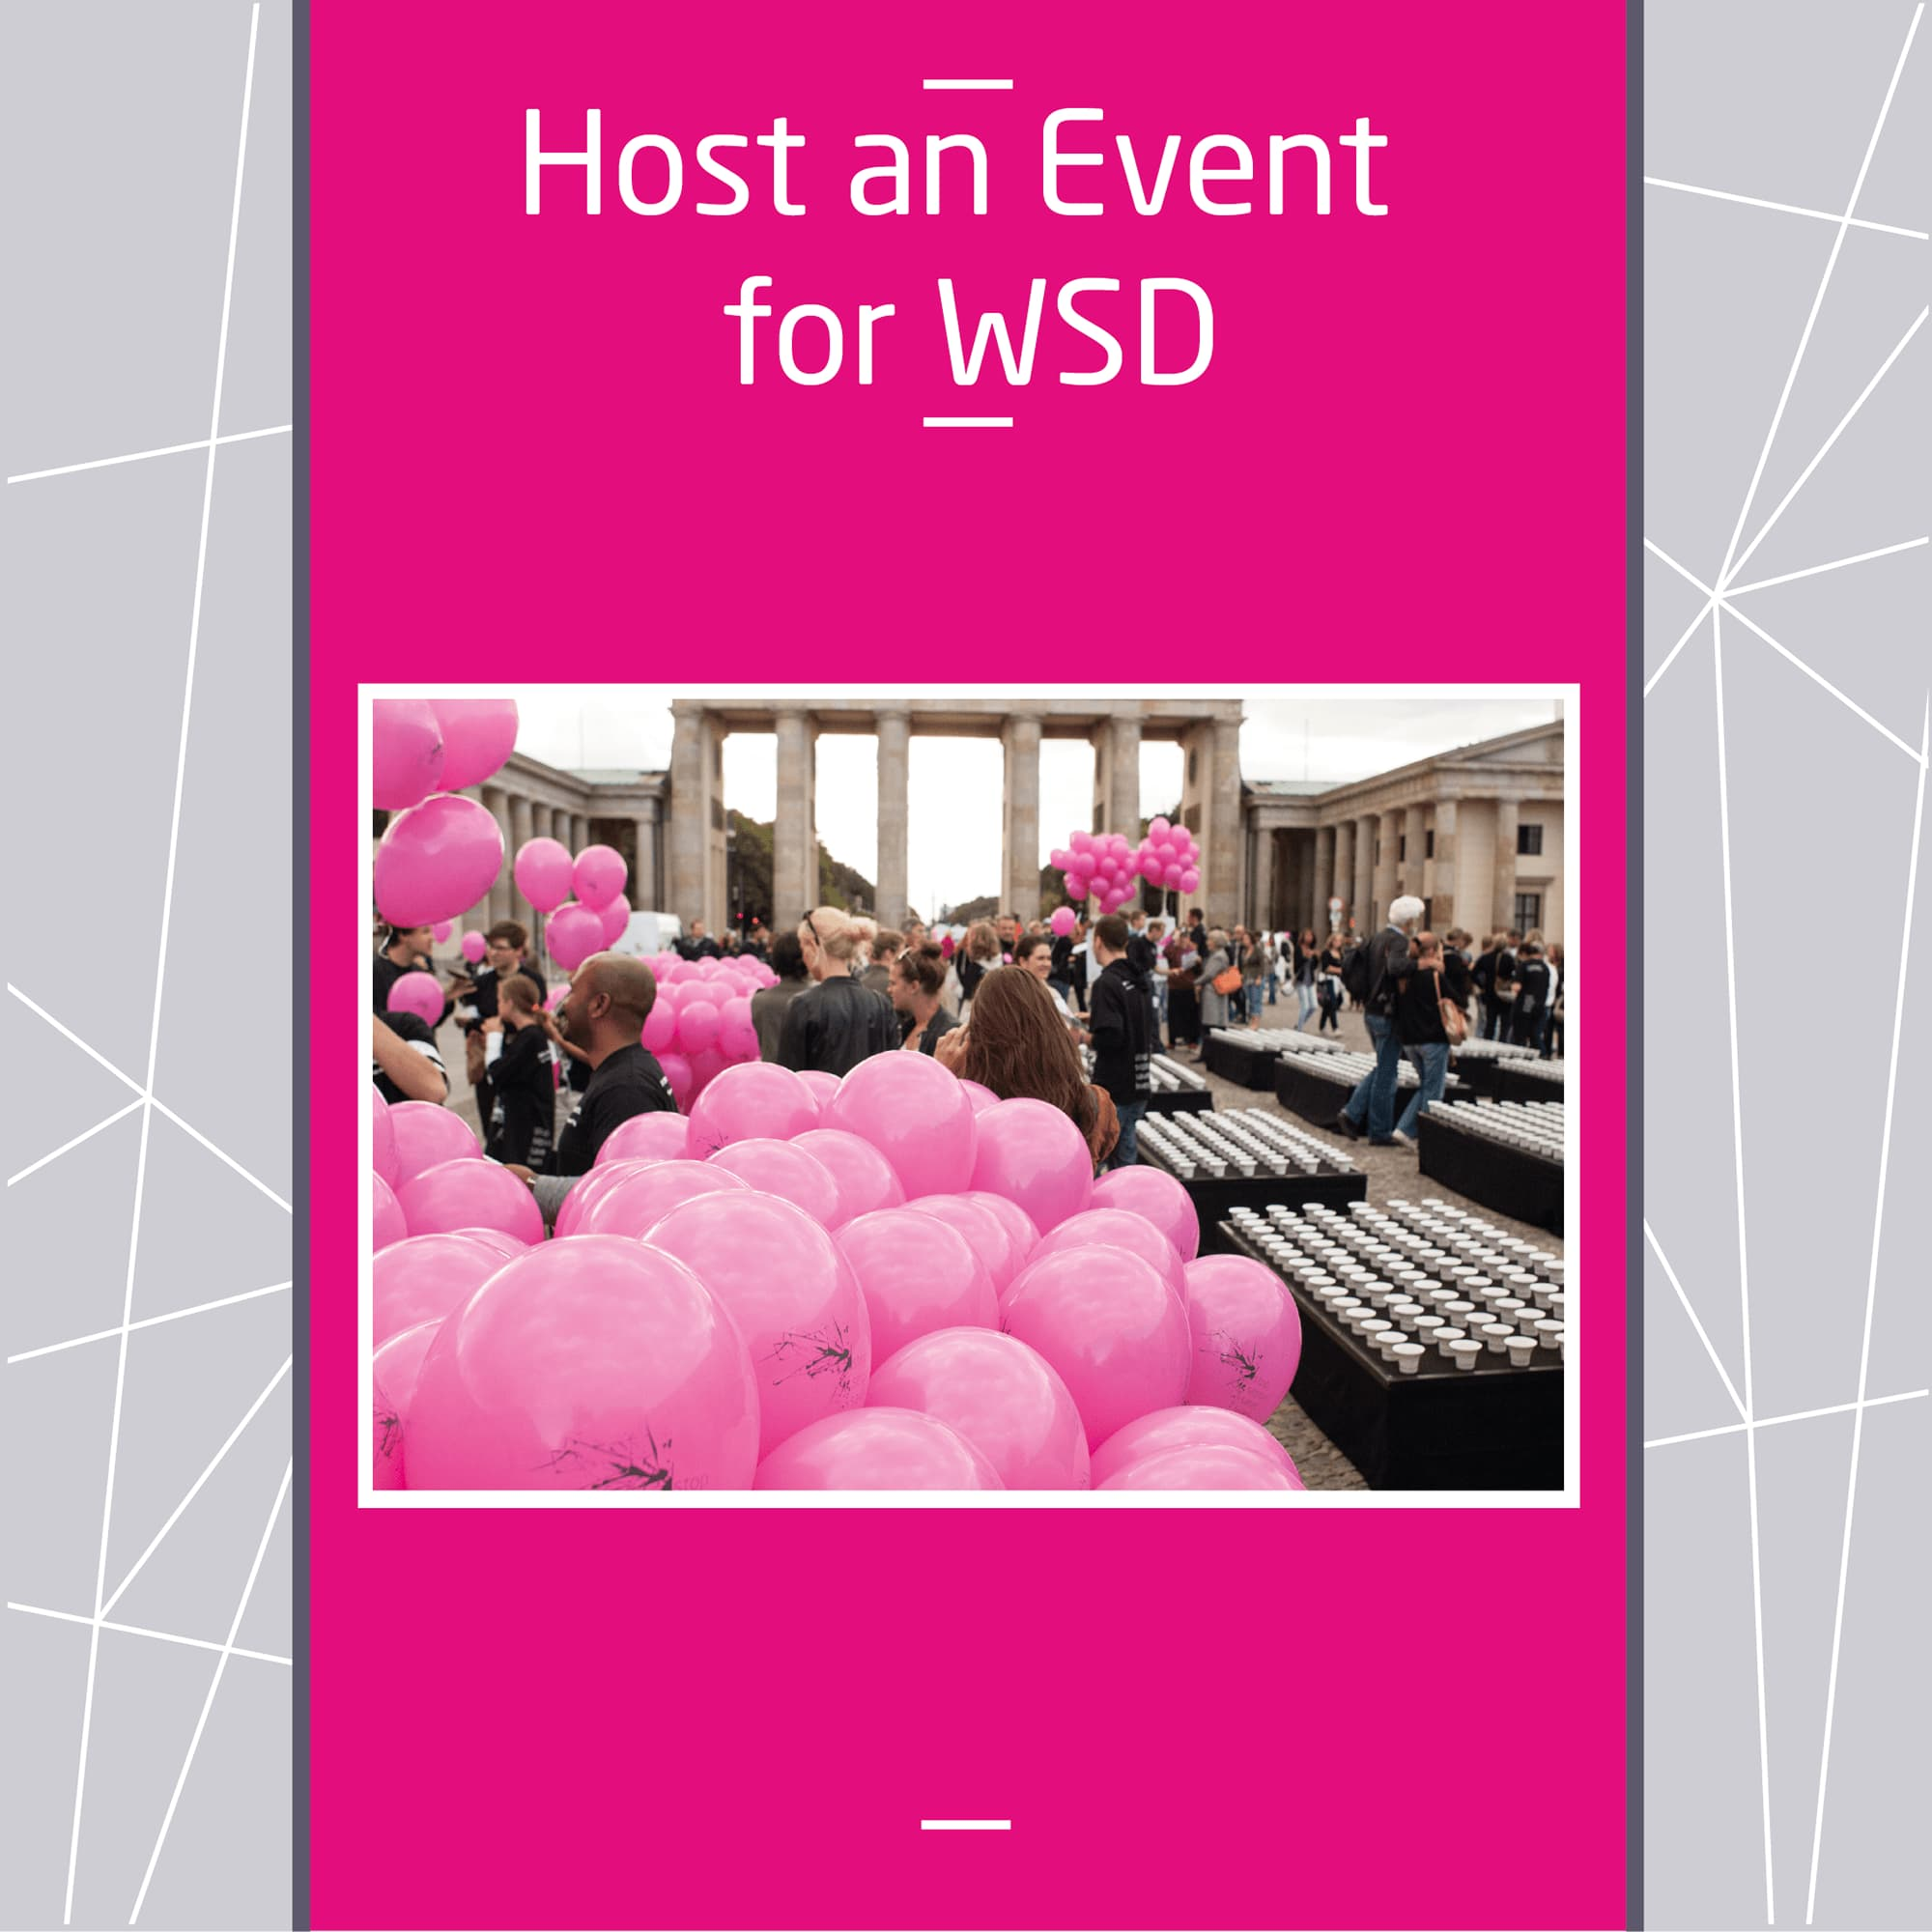 Host an Event for WSD